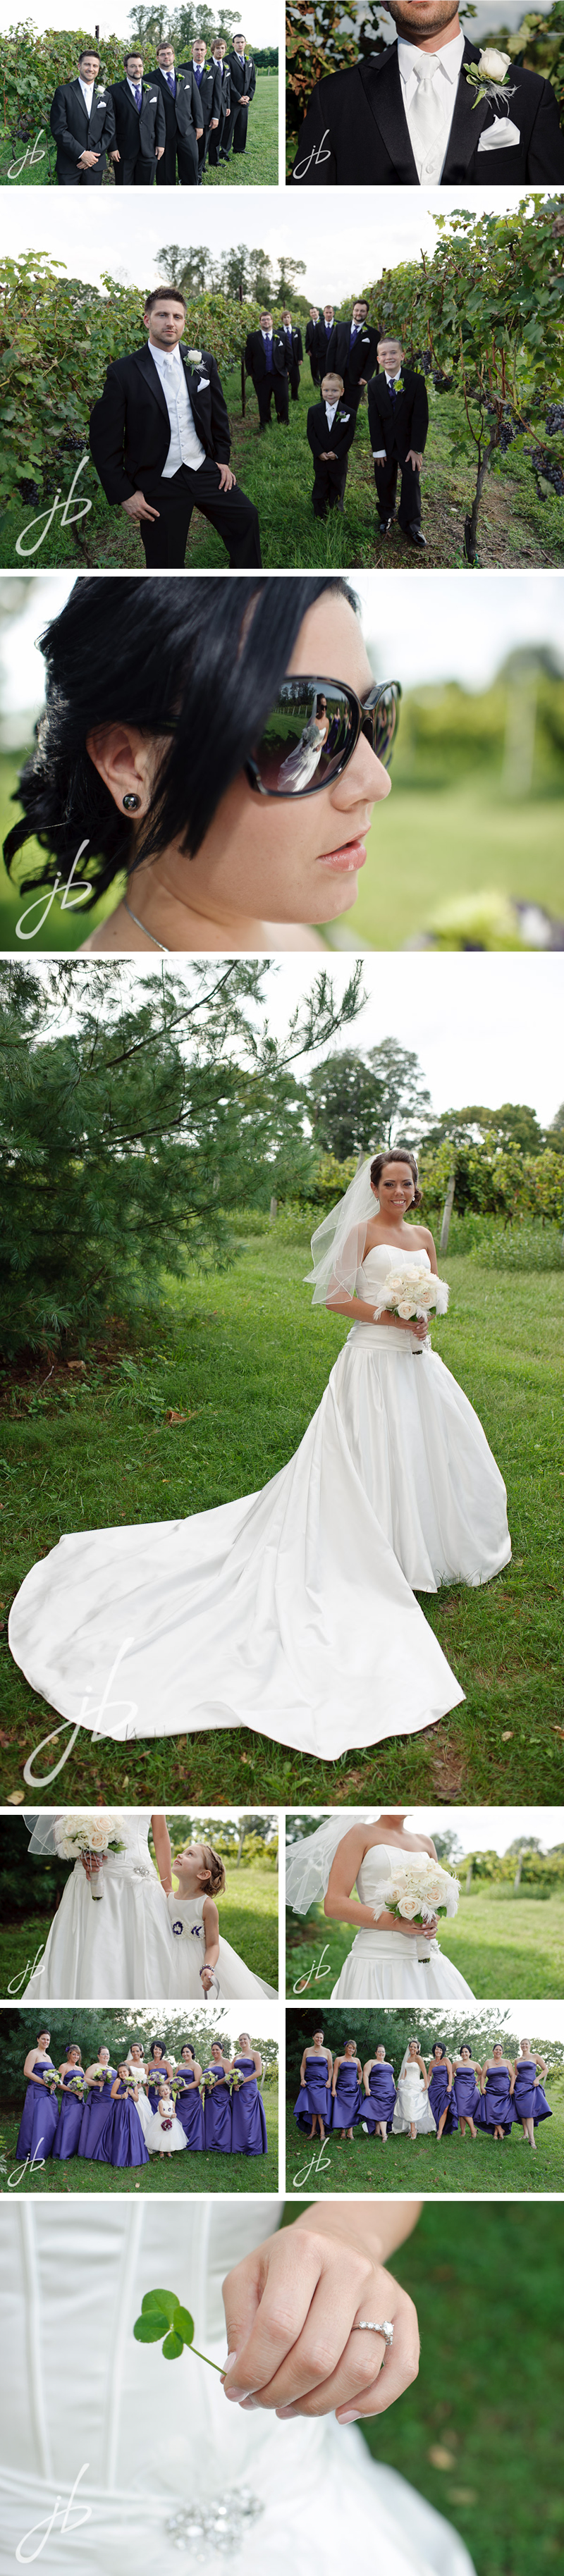 Wrightsville PA wedding photography by Jeremy Bischoff Photography 005